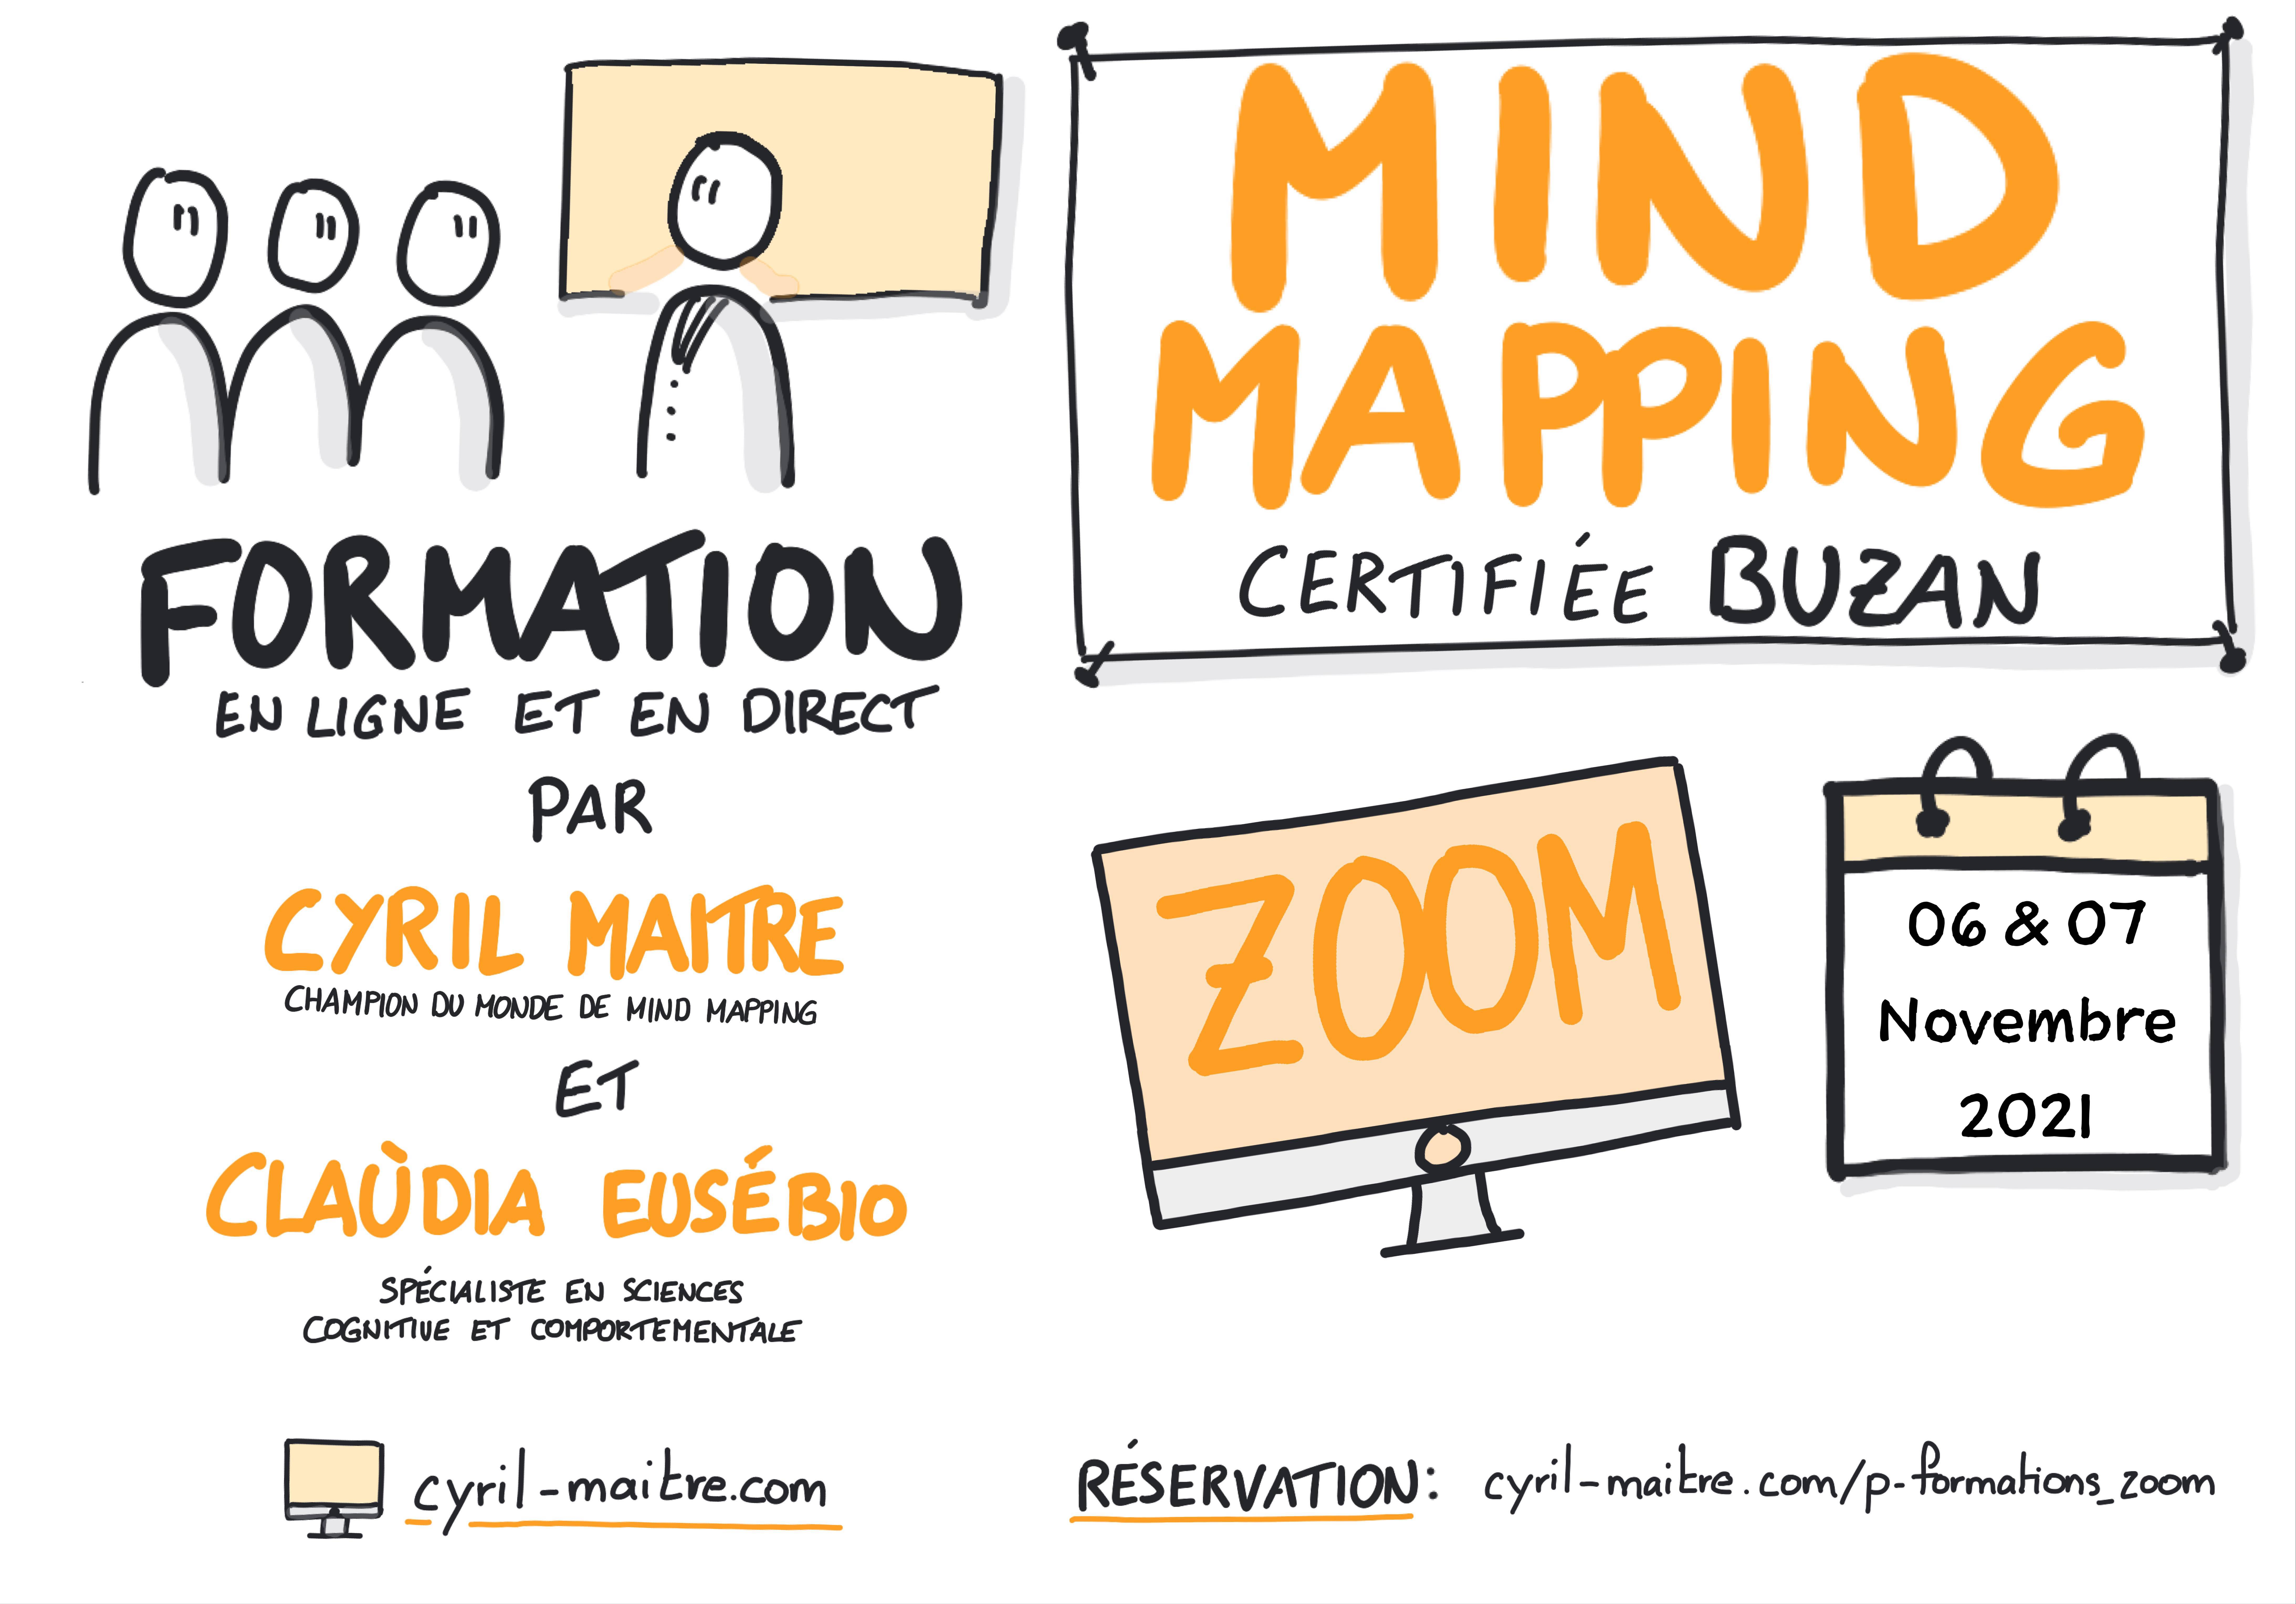 cyril maitre claudia eusebio formation mind mapping 0507f